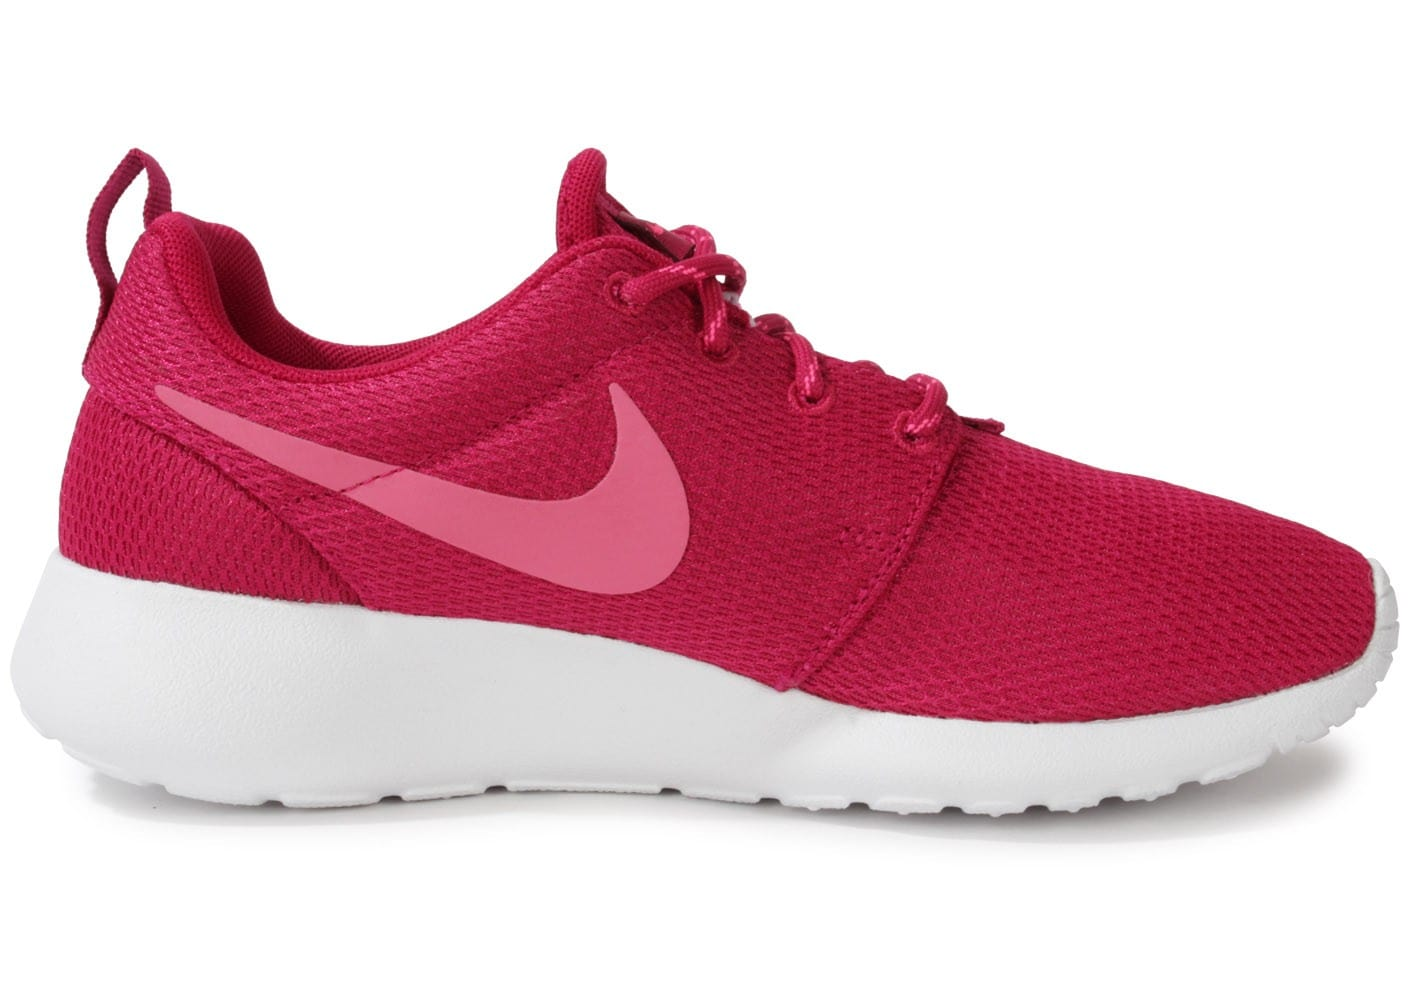 size 40 03266 574c2 595ca 6b857 promo code for chaussures nike roshe run rose vue dessous 1b6d8  b255f ...